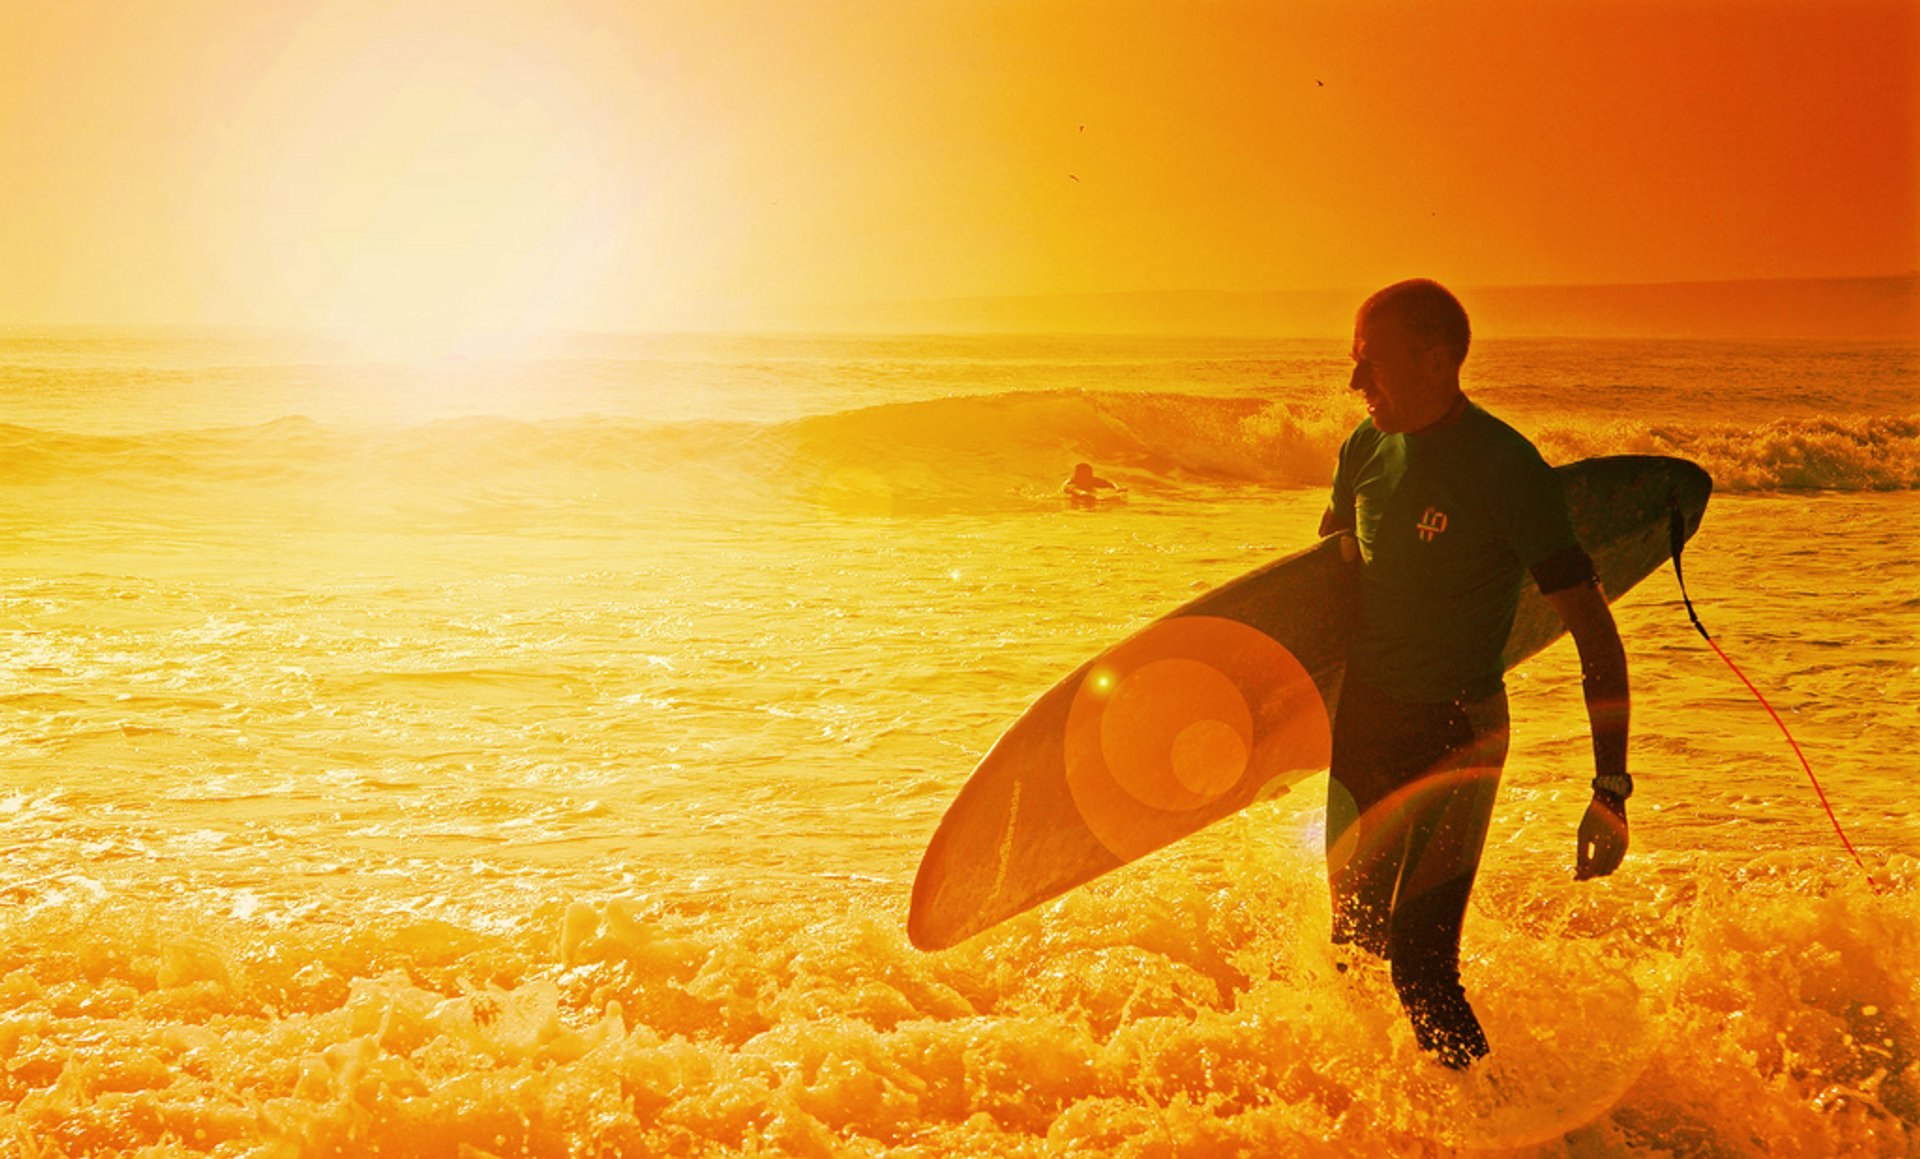 Surfing in Peru 2020 - Best Time